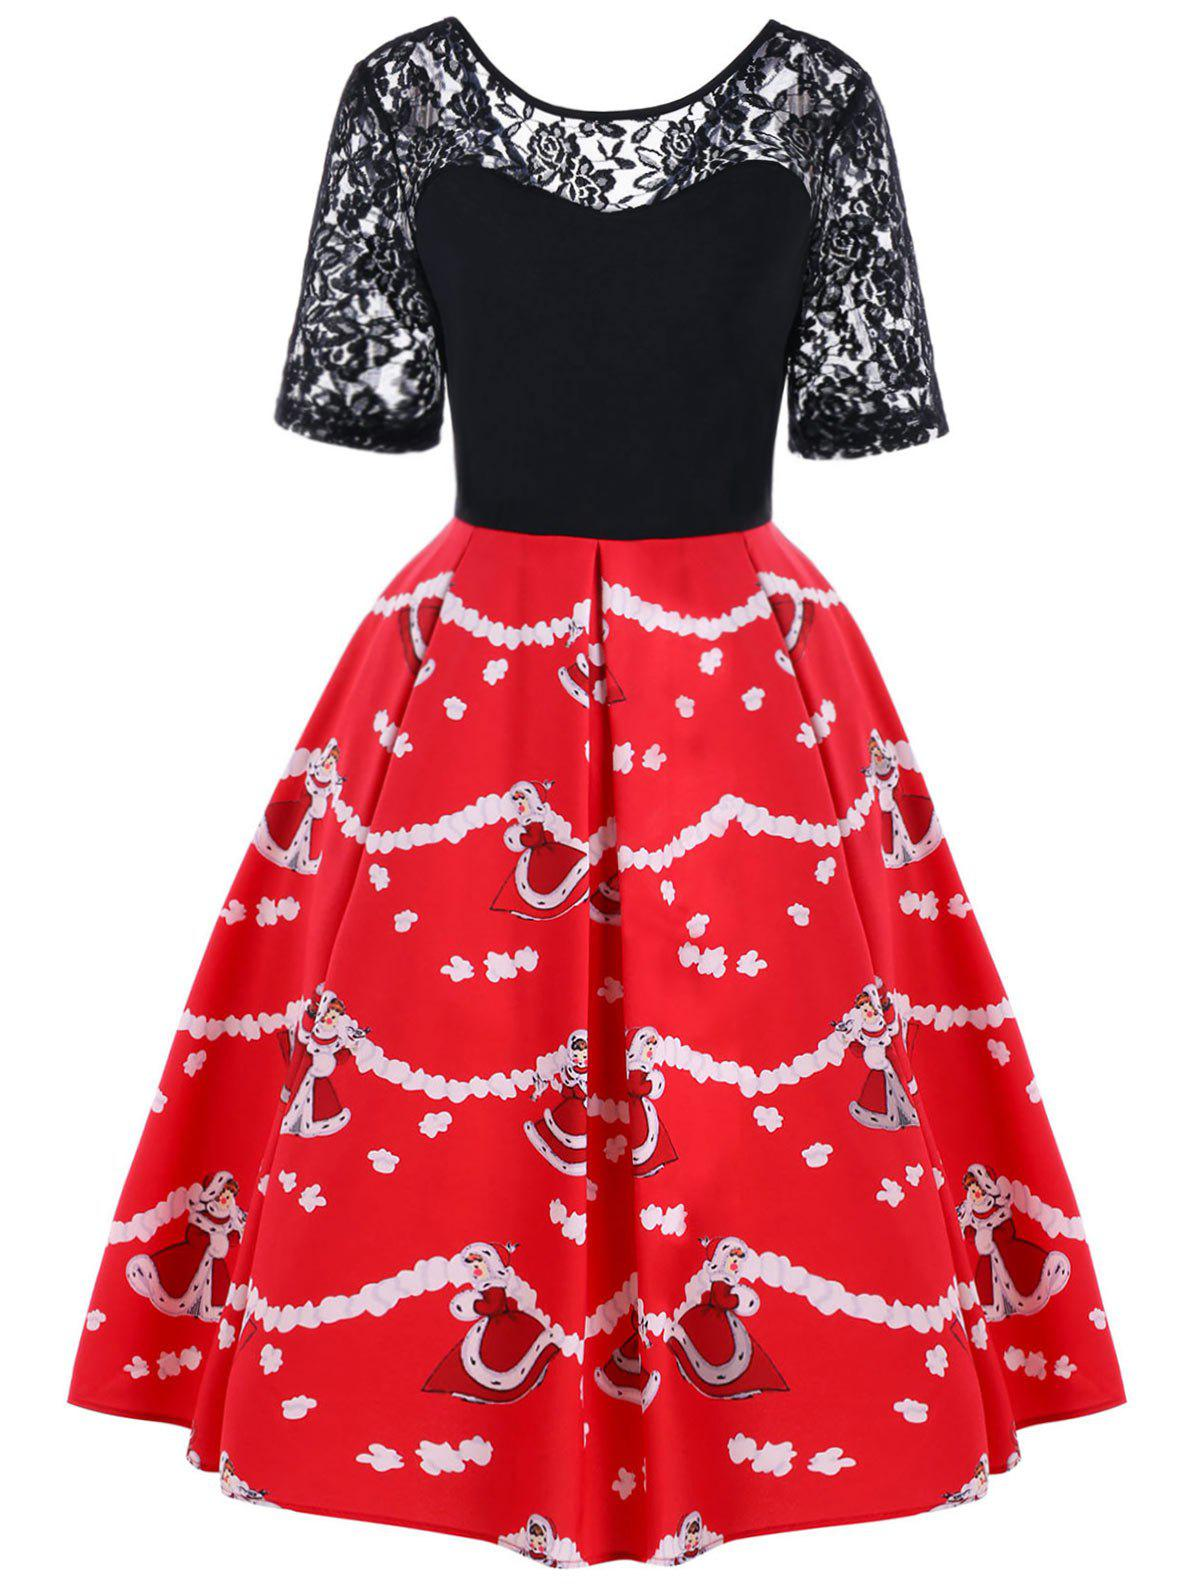 Christmas Lace Yoke Knee Length Swing Dress - BLACK/RED L